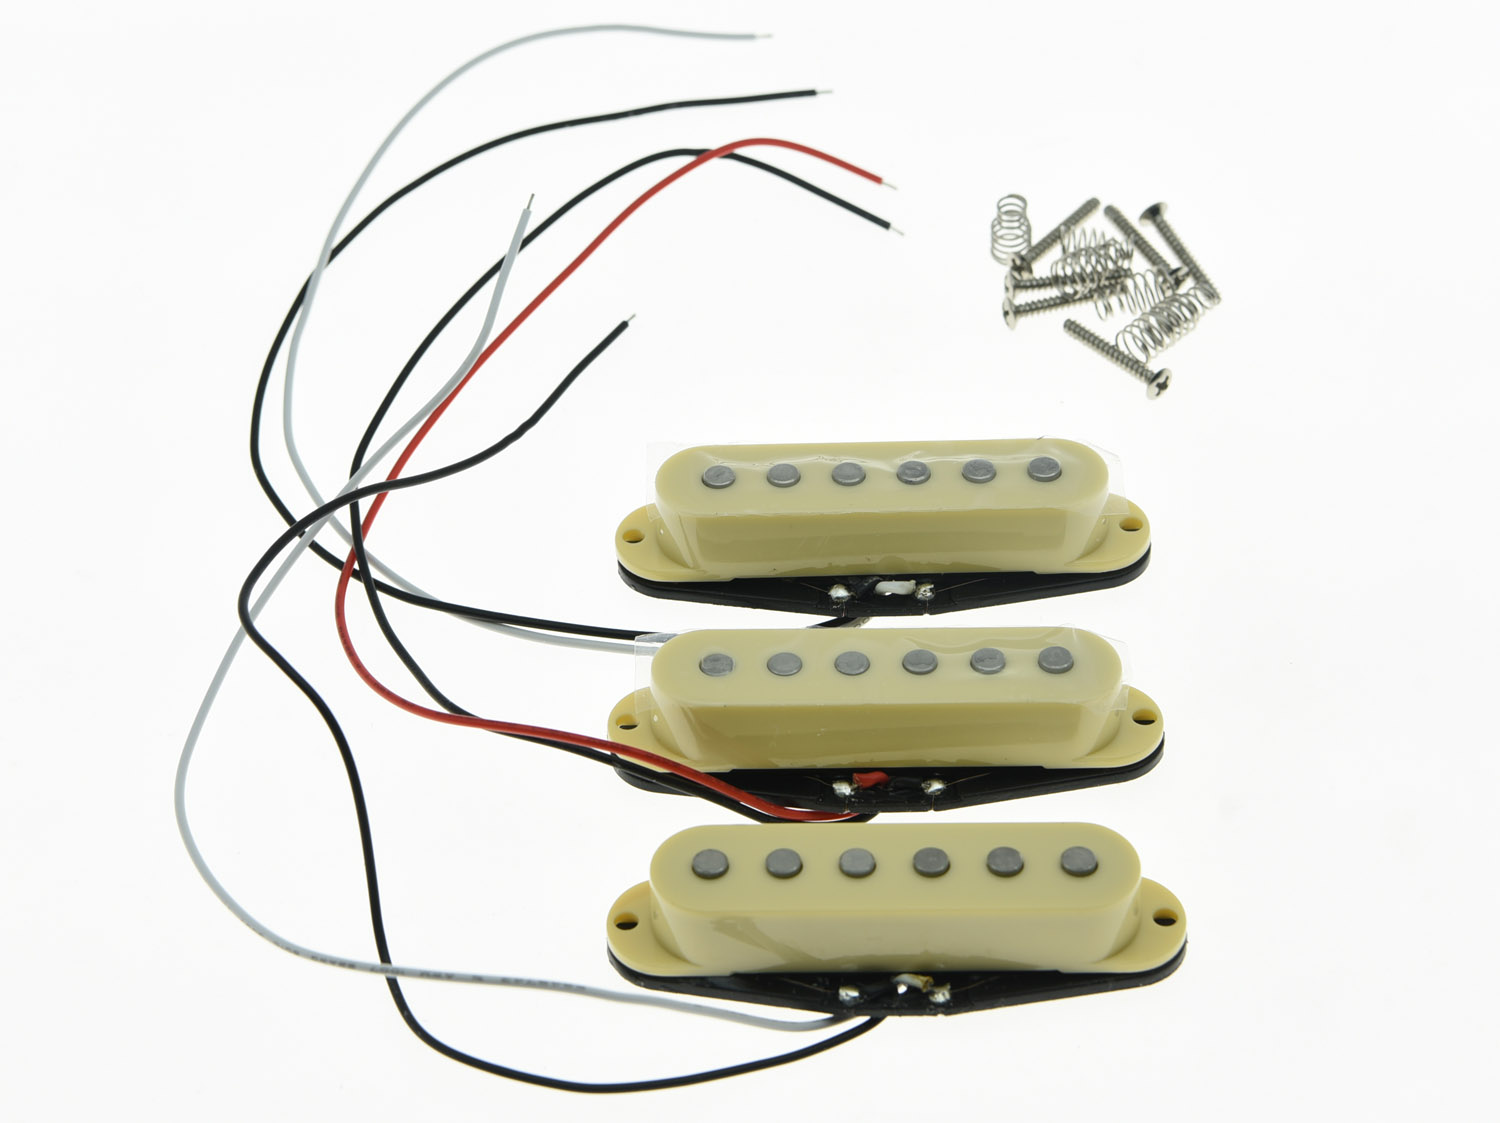 KAISH 3x N/M/B Cream Alnico 5 Single Coil Pickups High Output Sound Strat SSS Pickup vintage voice single coil pickups fits for stratocaster ceramic bobbin alnico single coil guitar pickup staggered pole top